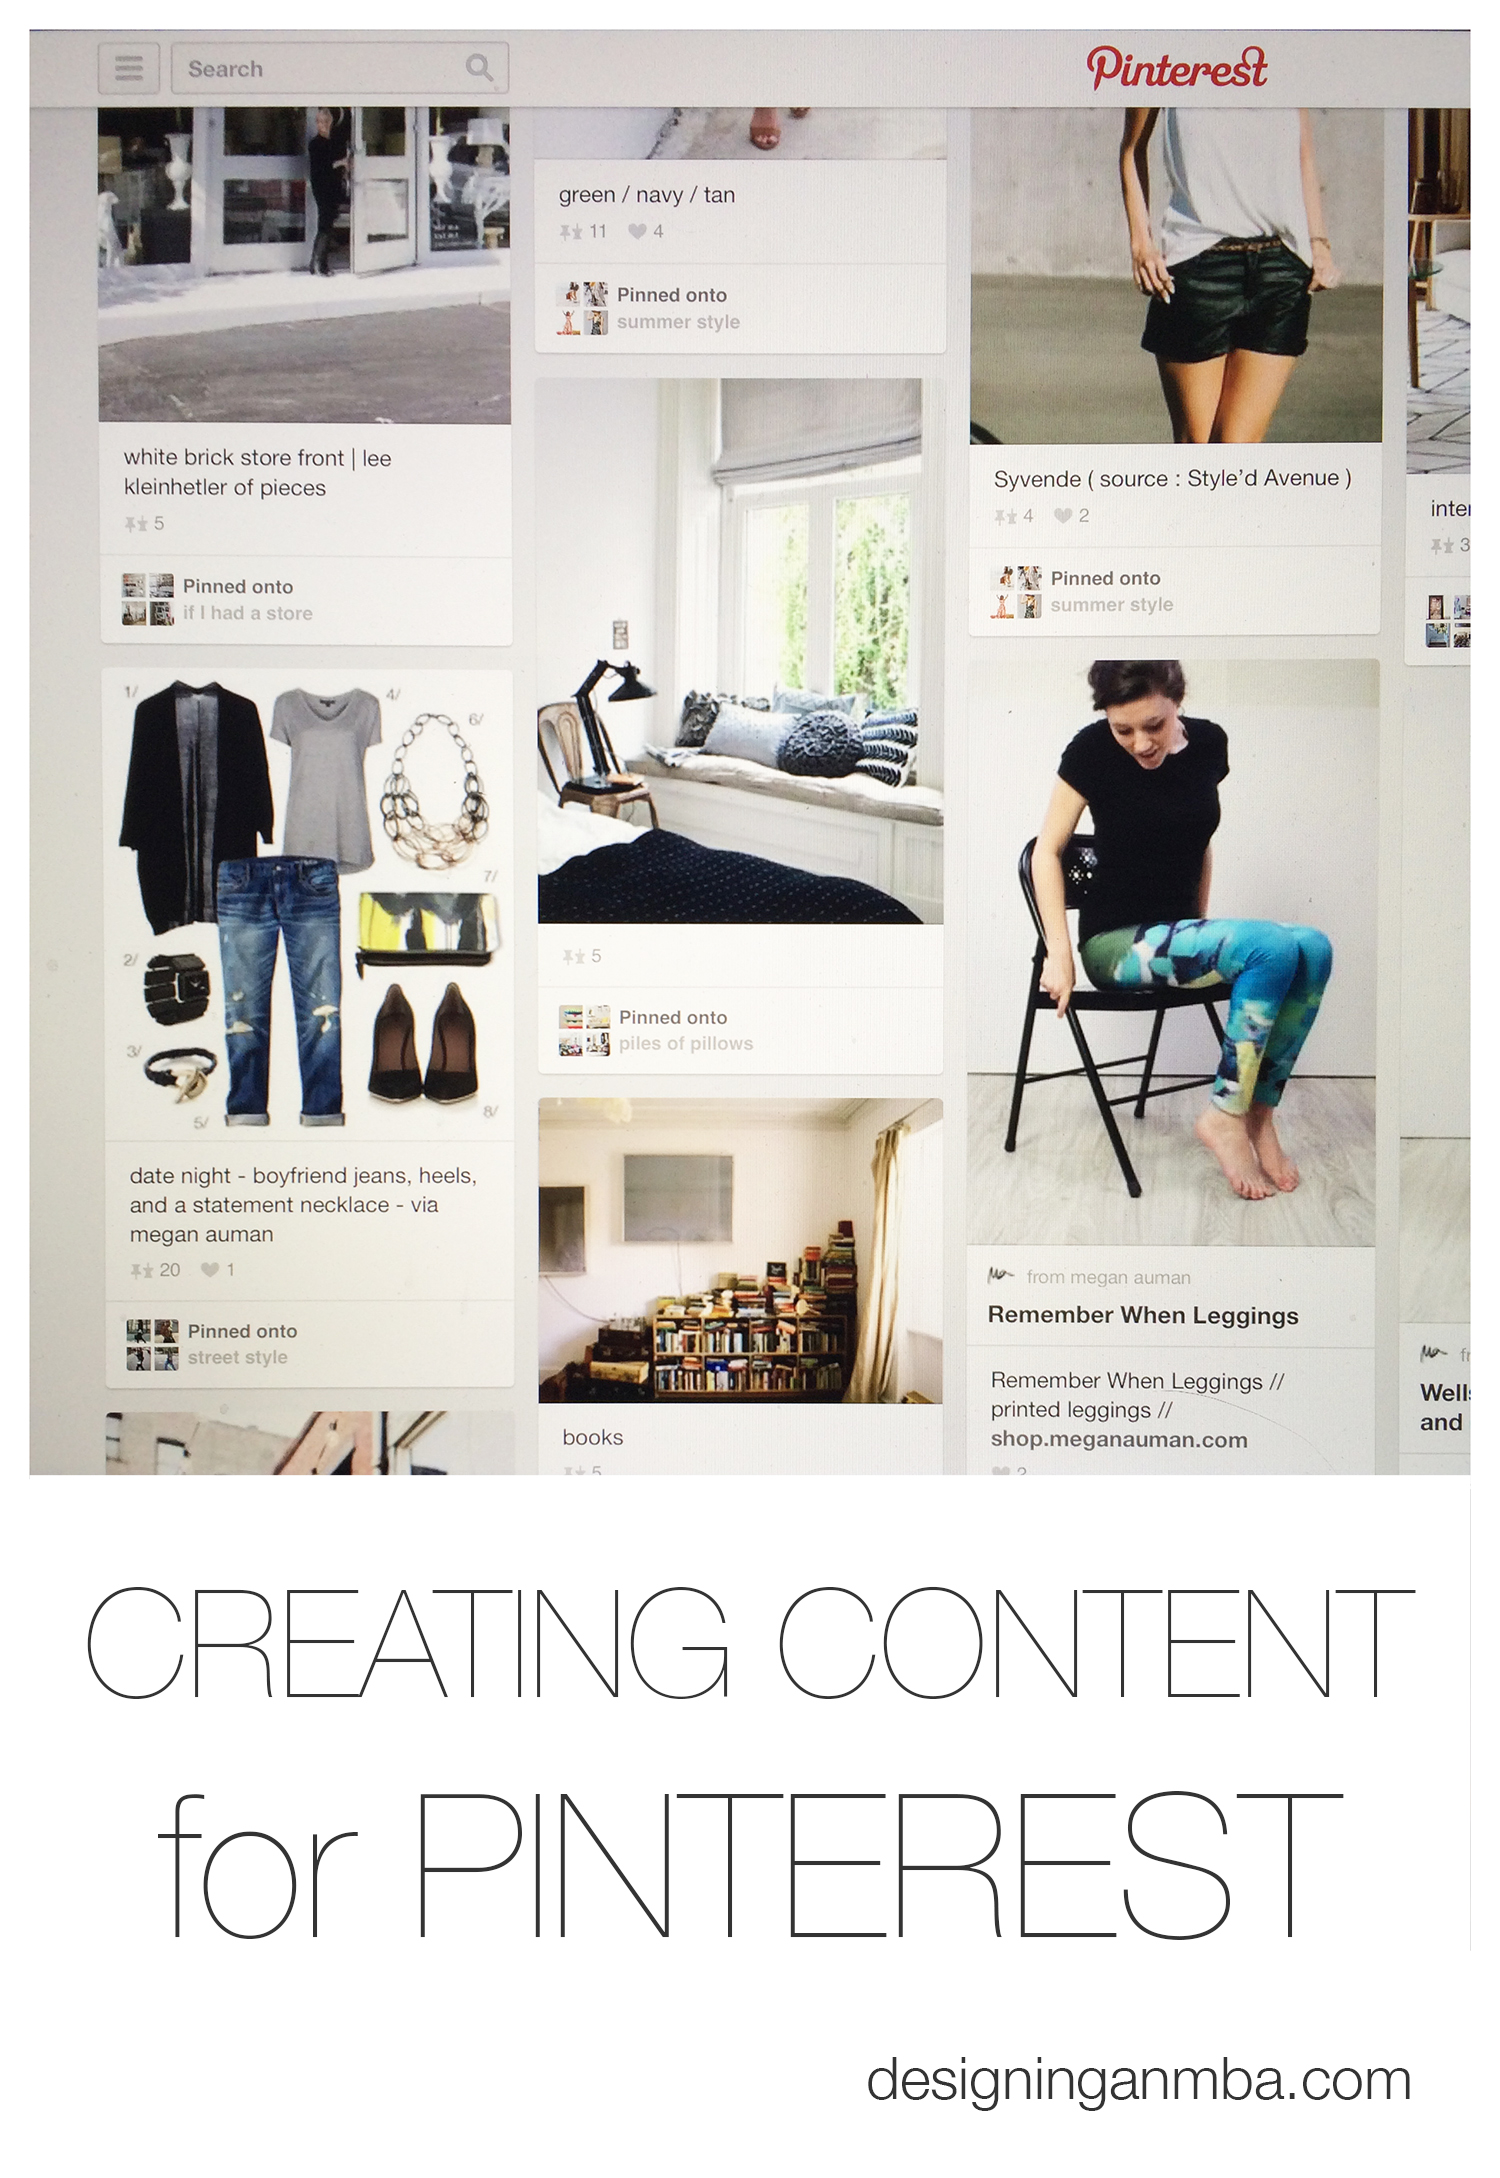 creating content for Pinterest